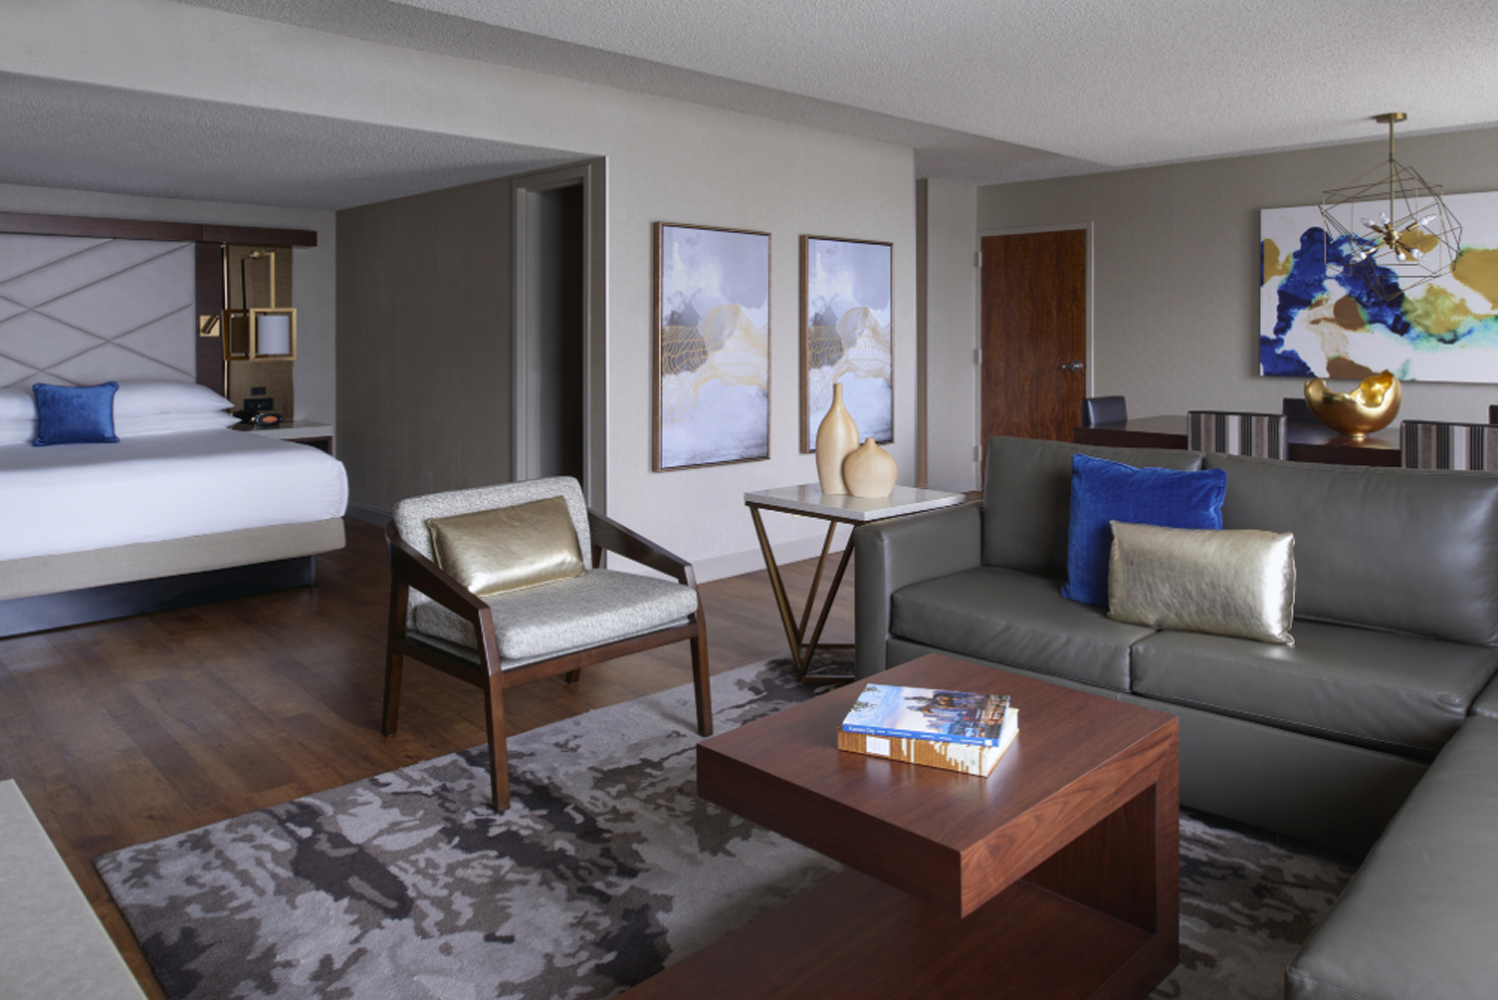 Hospitality interior design firm Paradigm Design Group unveiled a new full redesign of the Kansas City Airport Marriott.